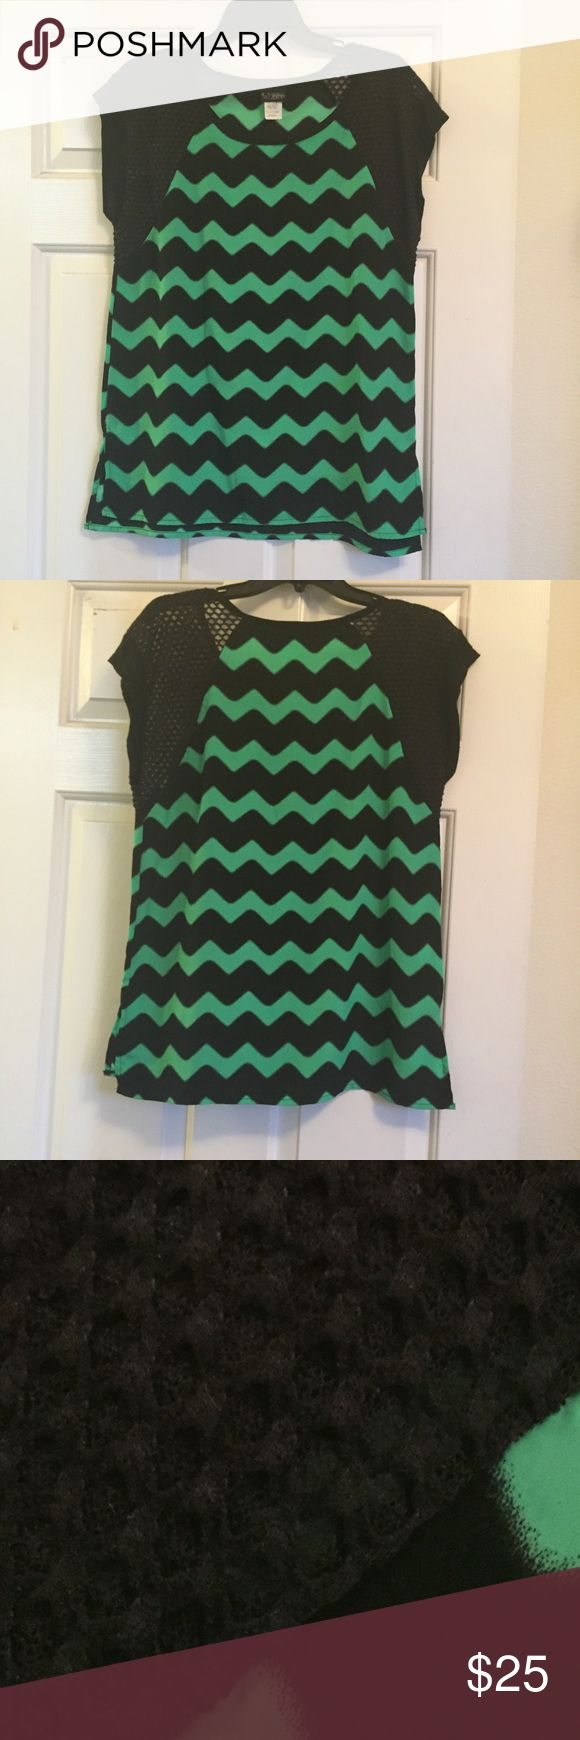 Green & Black Chevron Striped Knit Sleeve Top NWOT!!! NEVER WORN!!! I bought this in hopes of fitting in it but I haven't gotten there yet. Time to pass it on! Super cute! Green & Black Chevron Striped Knit Sleeve Top. Short sleeve t-shirt. M medium. Stripes cool art Tops